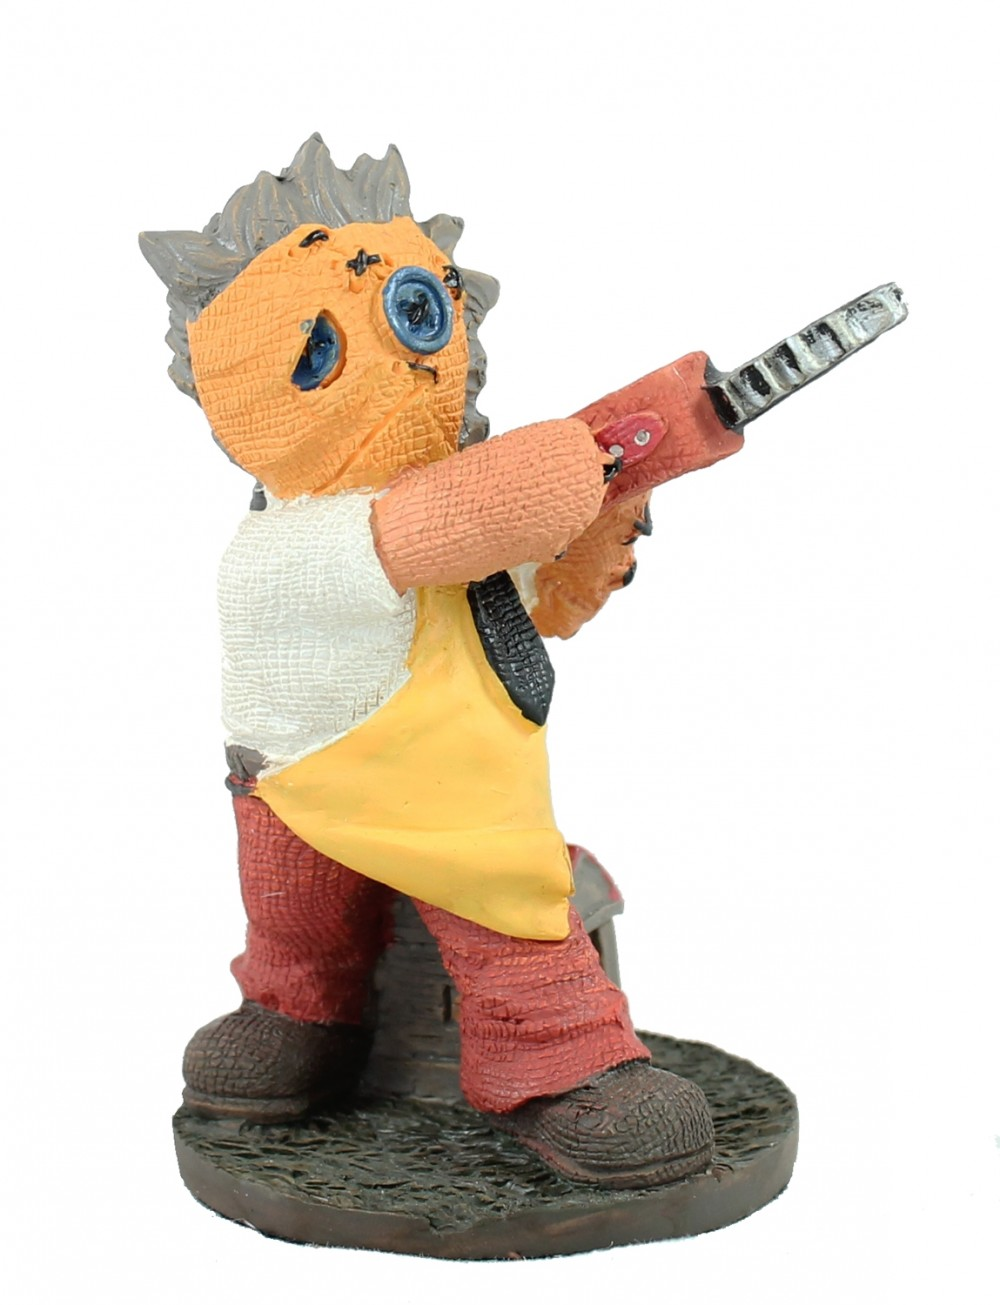 Pinheadz Figur Leatherface Texas Chainsaw Massacre Horror Figur Monster Figuren